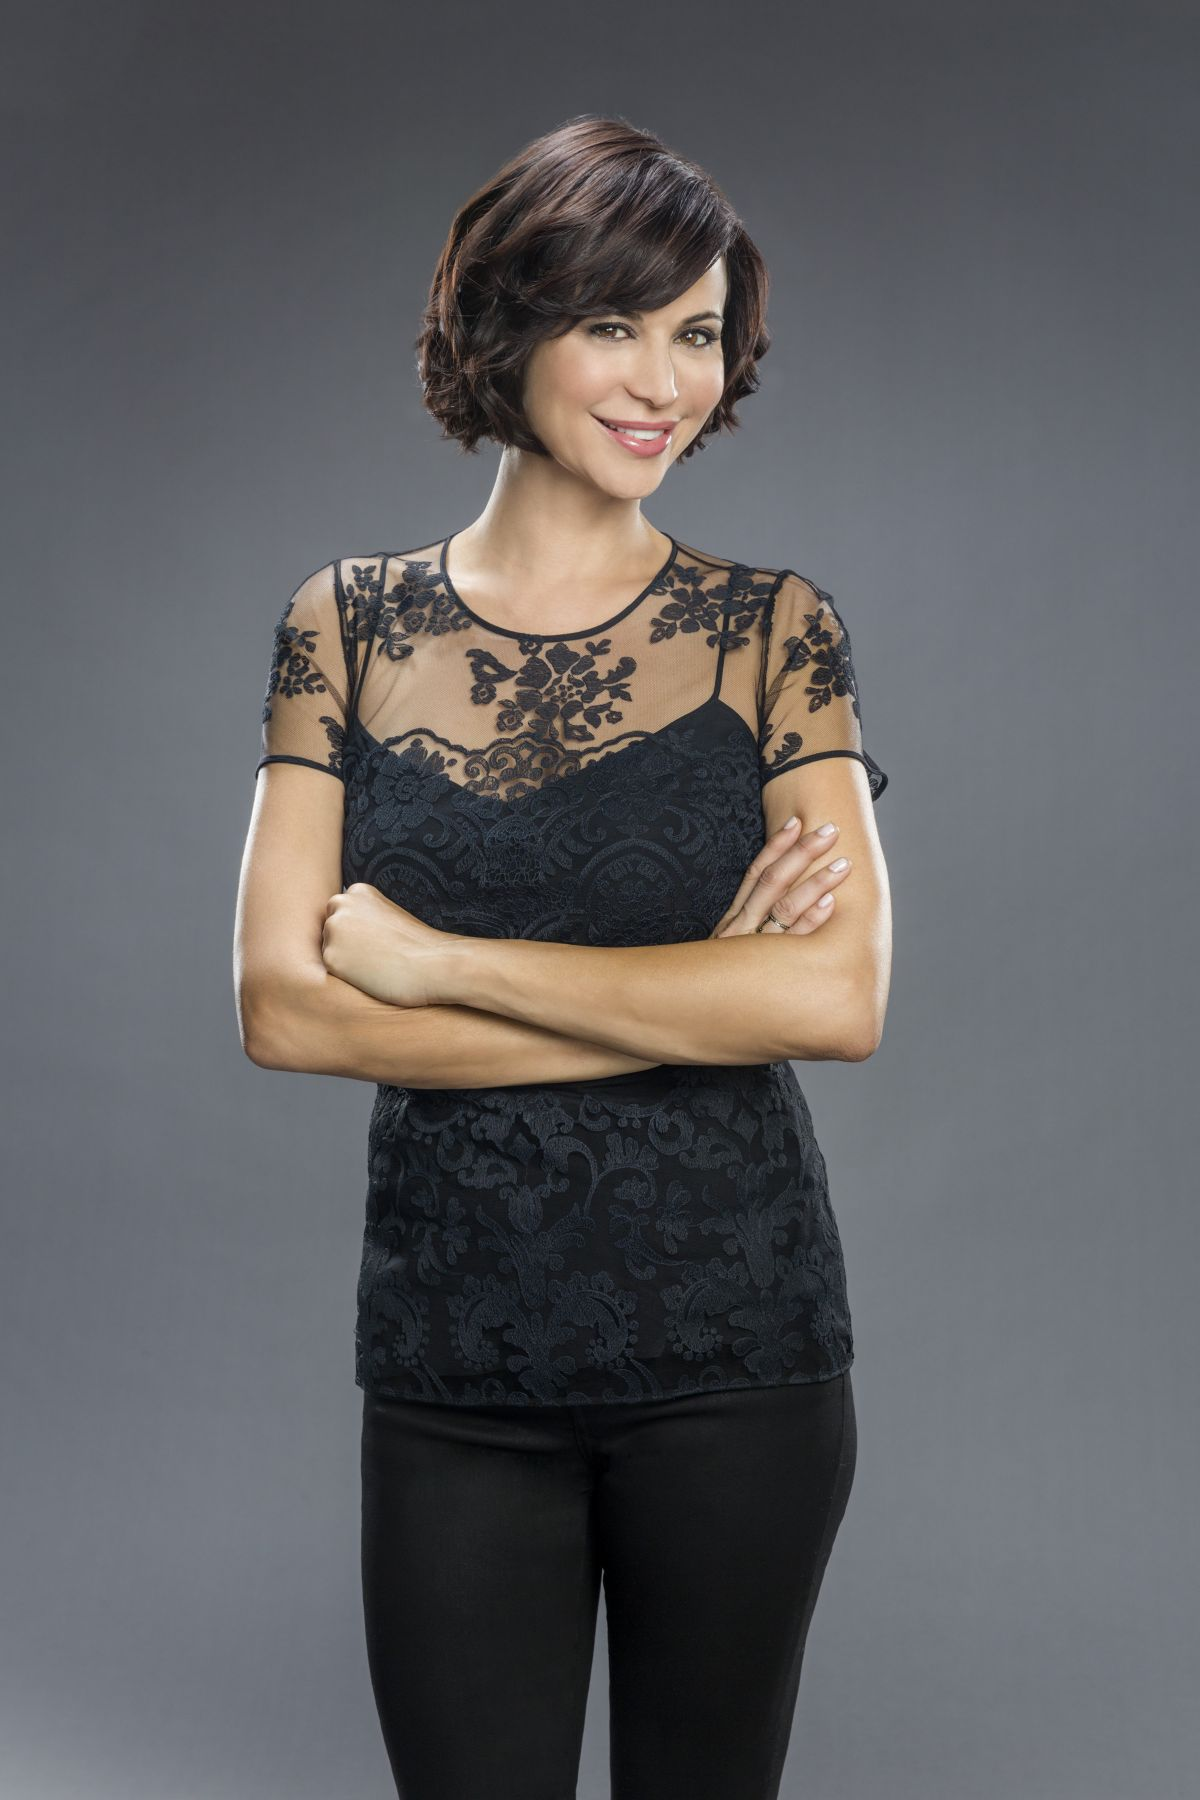 Catherine Bell At The Good Witch 2015 TV Series Promoshoot - Celebzz